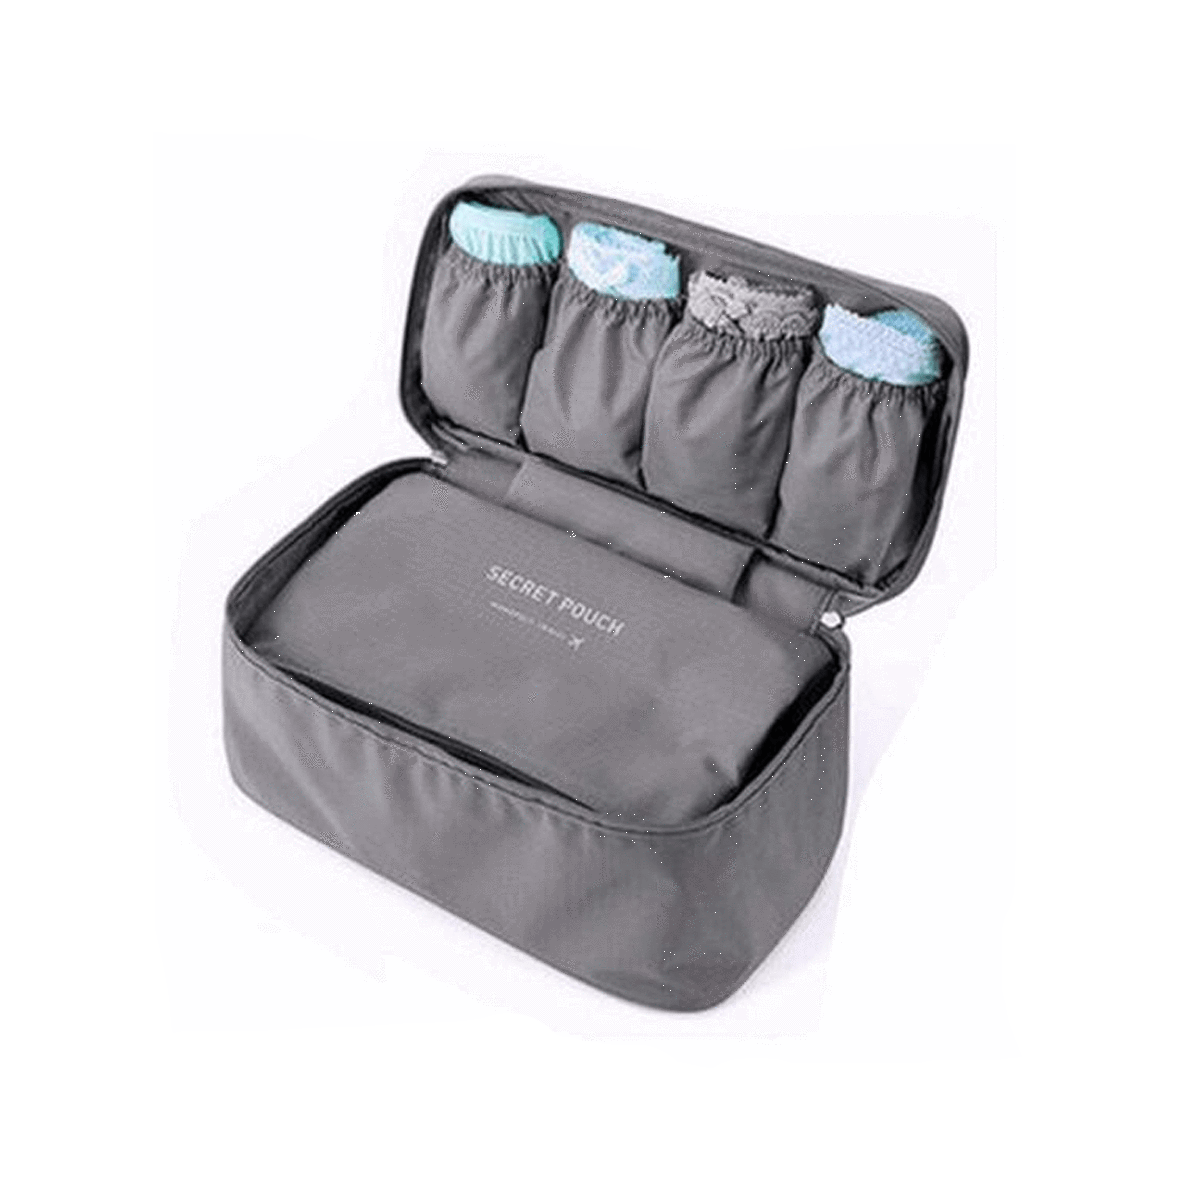 Multi-Purpose Travel Bag Storage Bag for Under Garments